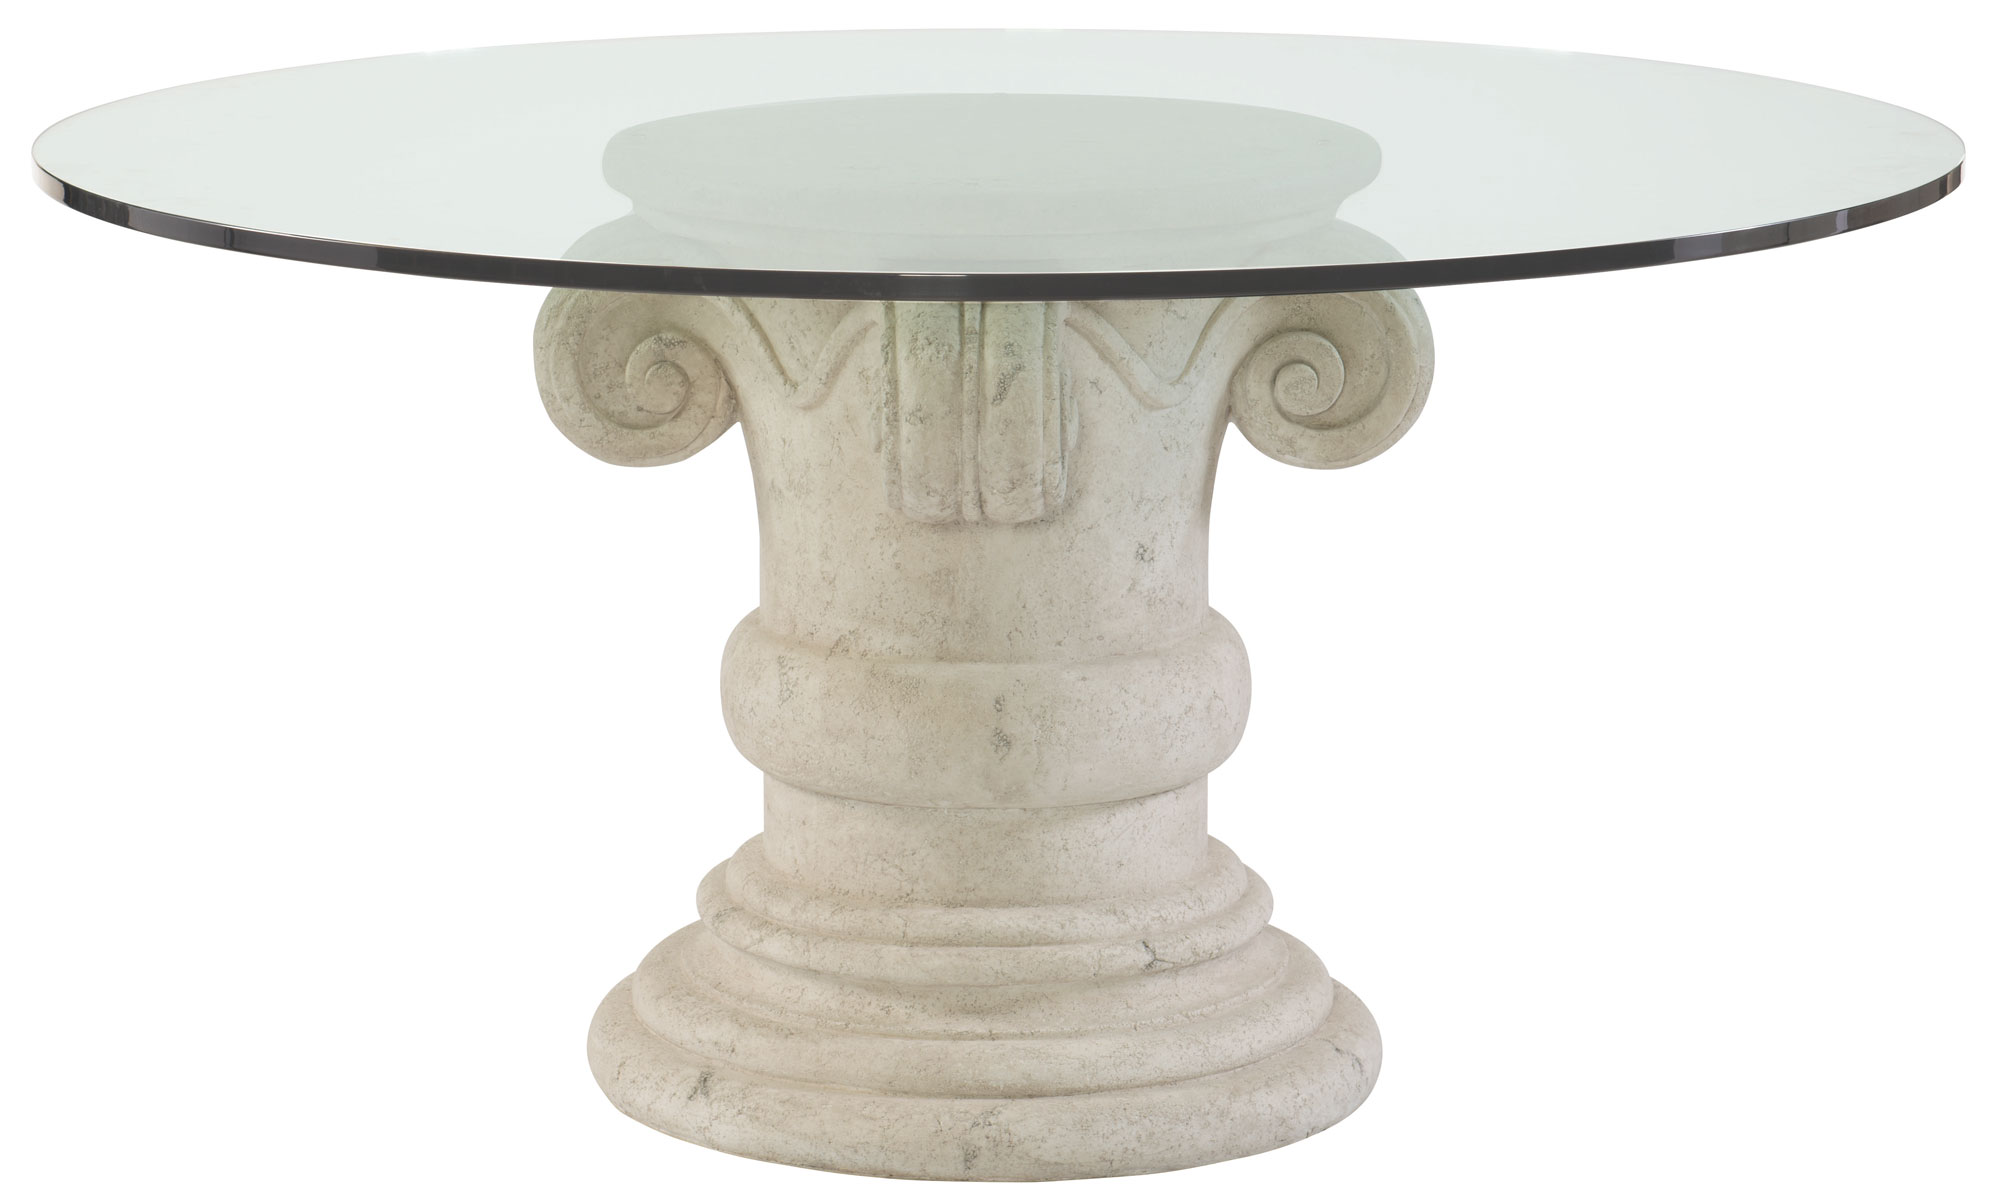 round dining table glass top and pedestal base bernhardt hospitality. Black Bedroom Furniture Sets. Home Design Ideas